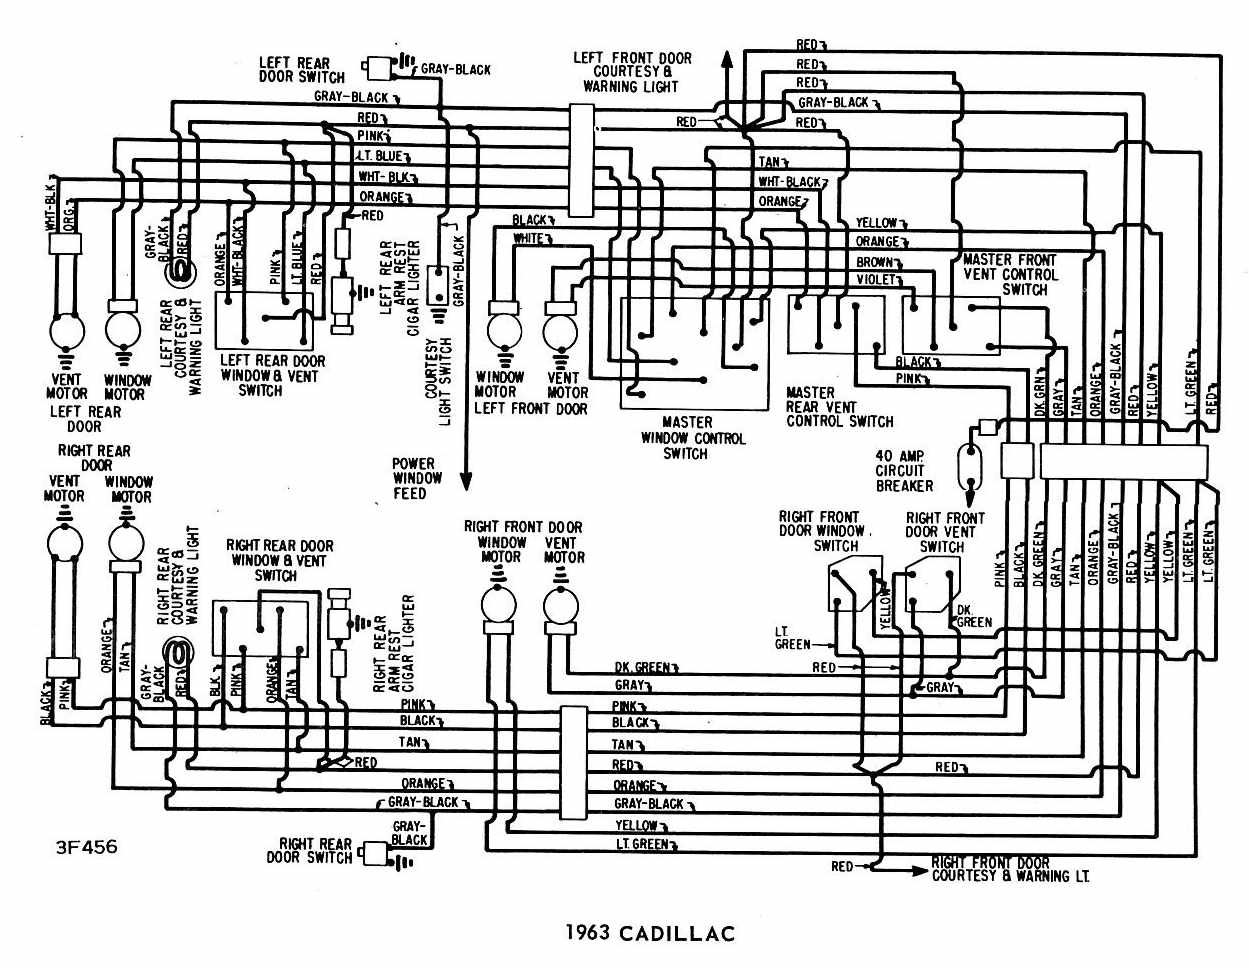 Cadillac 1963 Windows Wiring Diagram on 2012 Cadillac Coupe